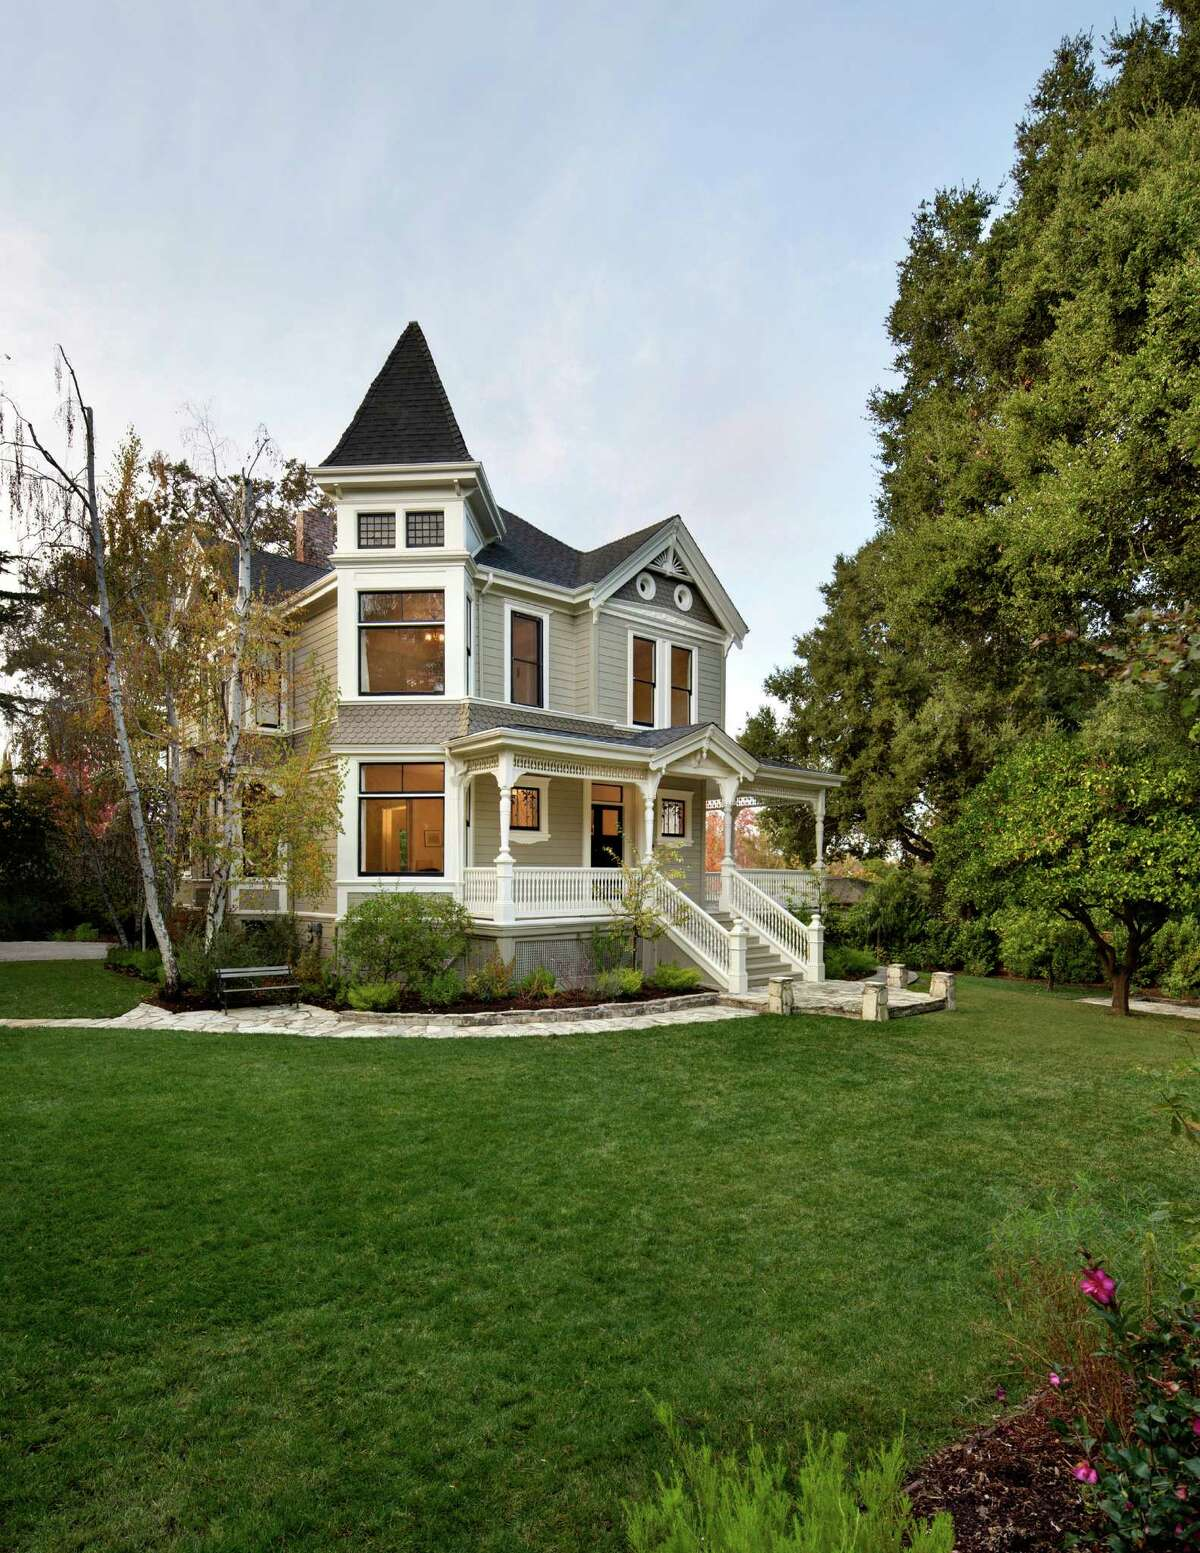 The Queen Anne Victorian was built in 1893 and recently renovated.